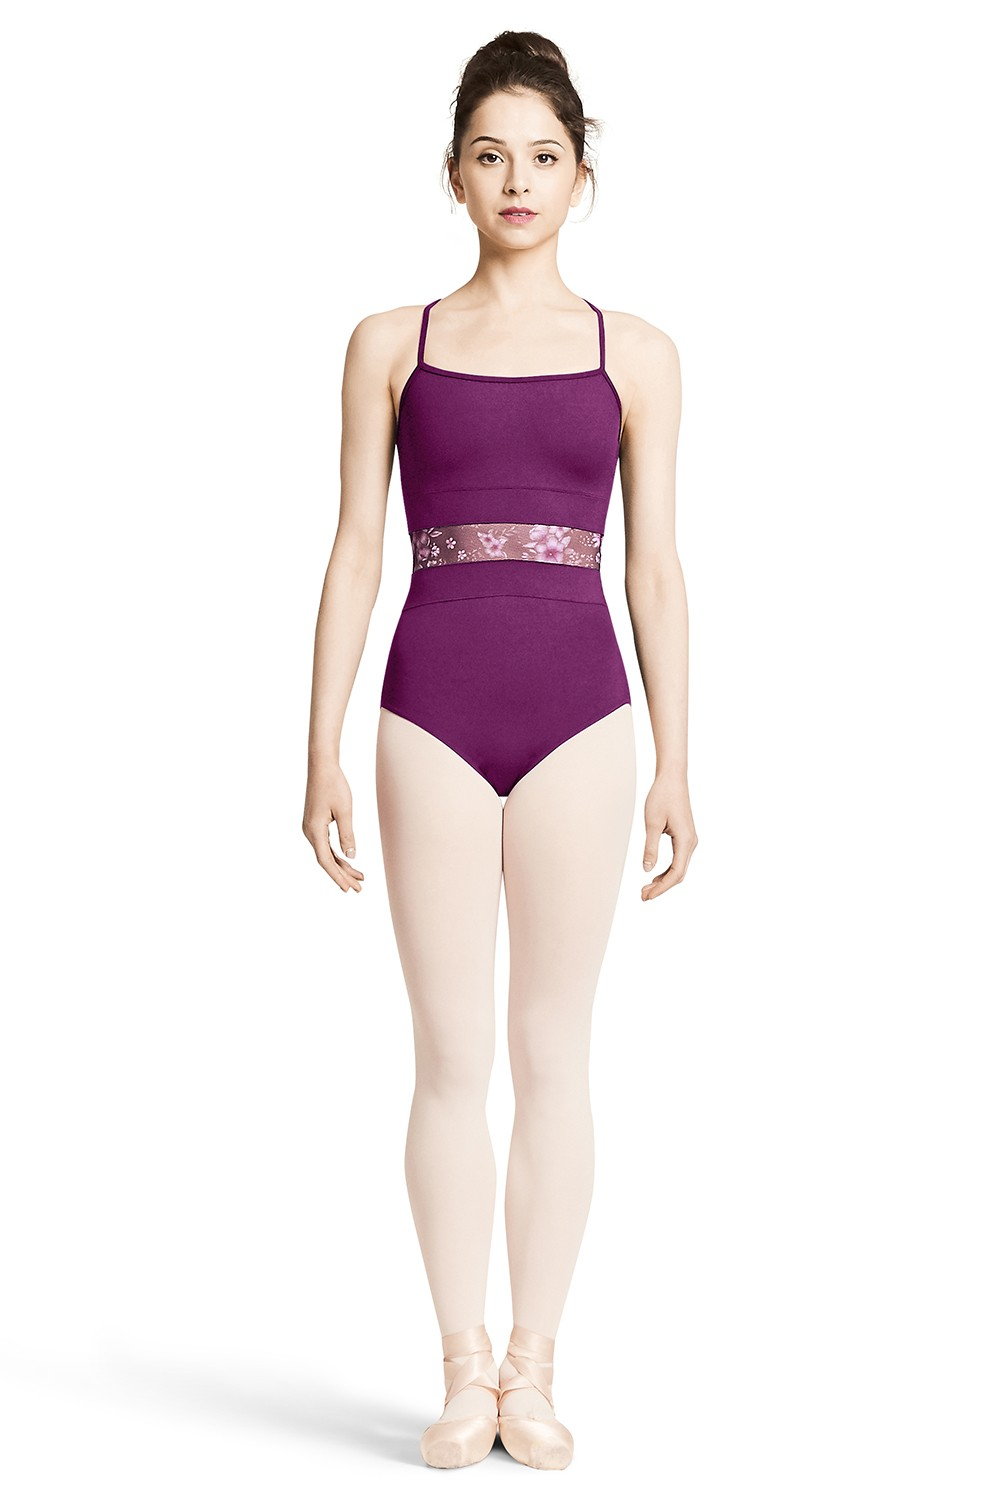 Body Con Spalline Sottili  Women's Dance Leotards